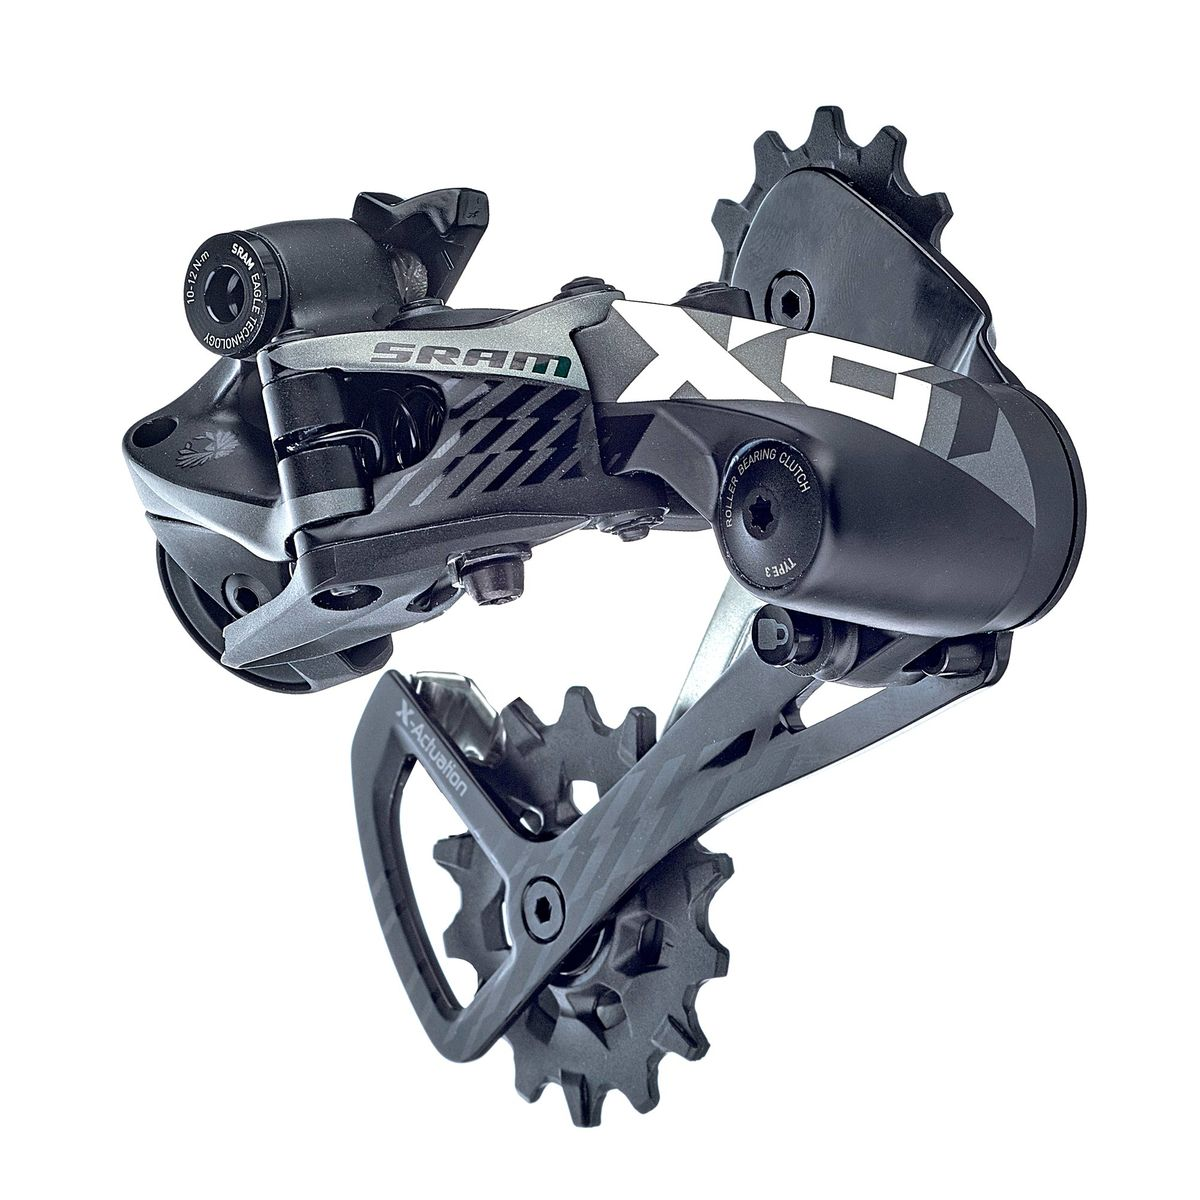 X01 Eagle rear derailleur